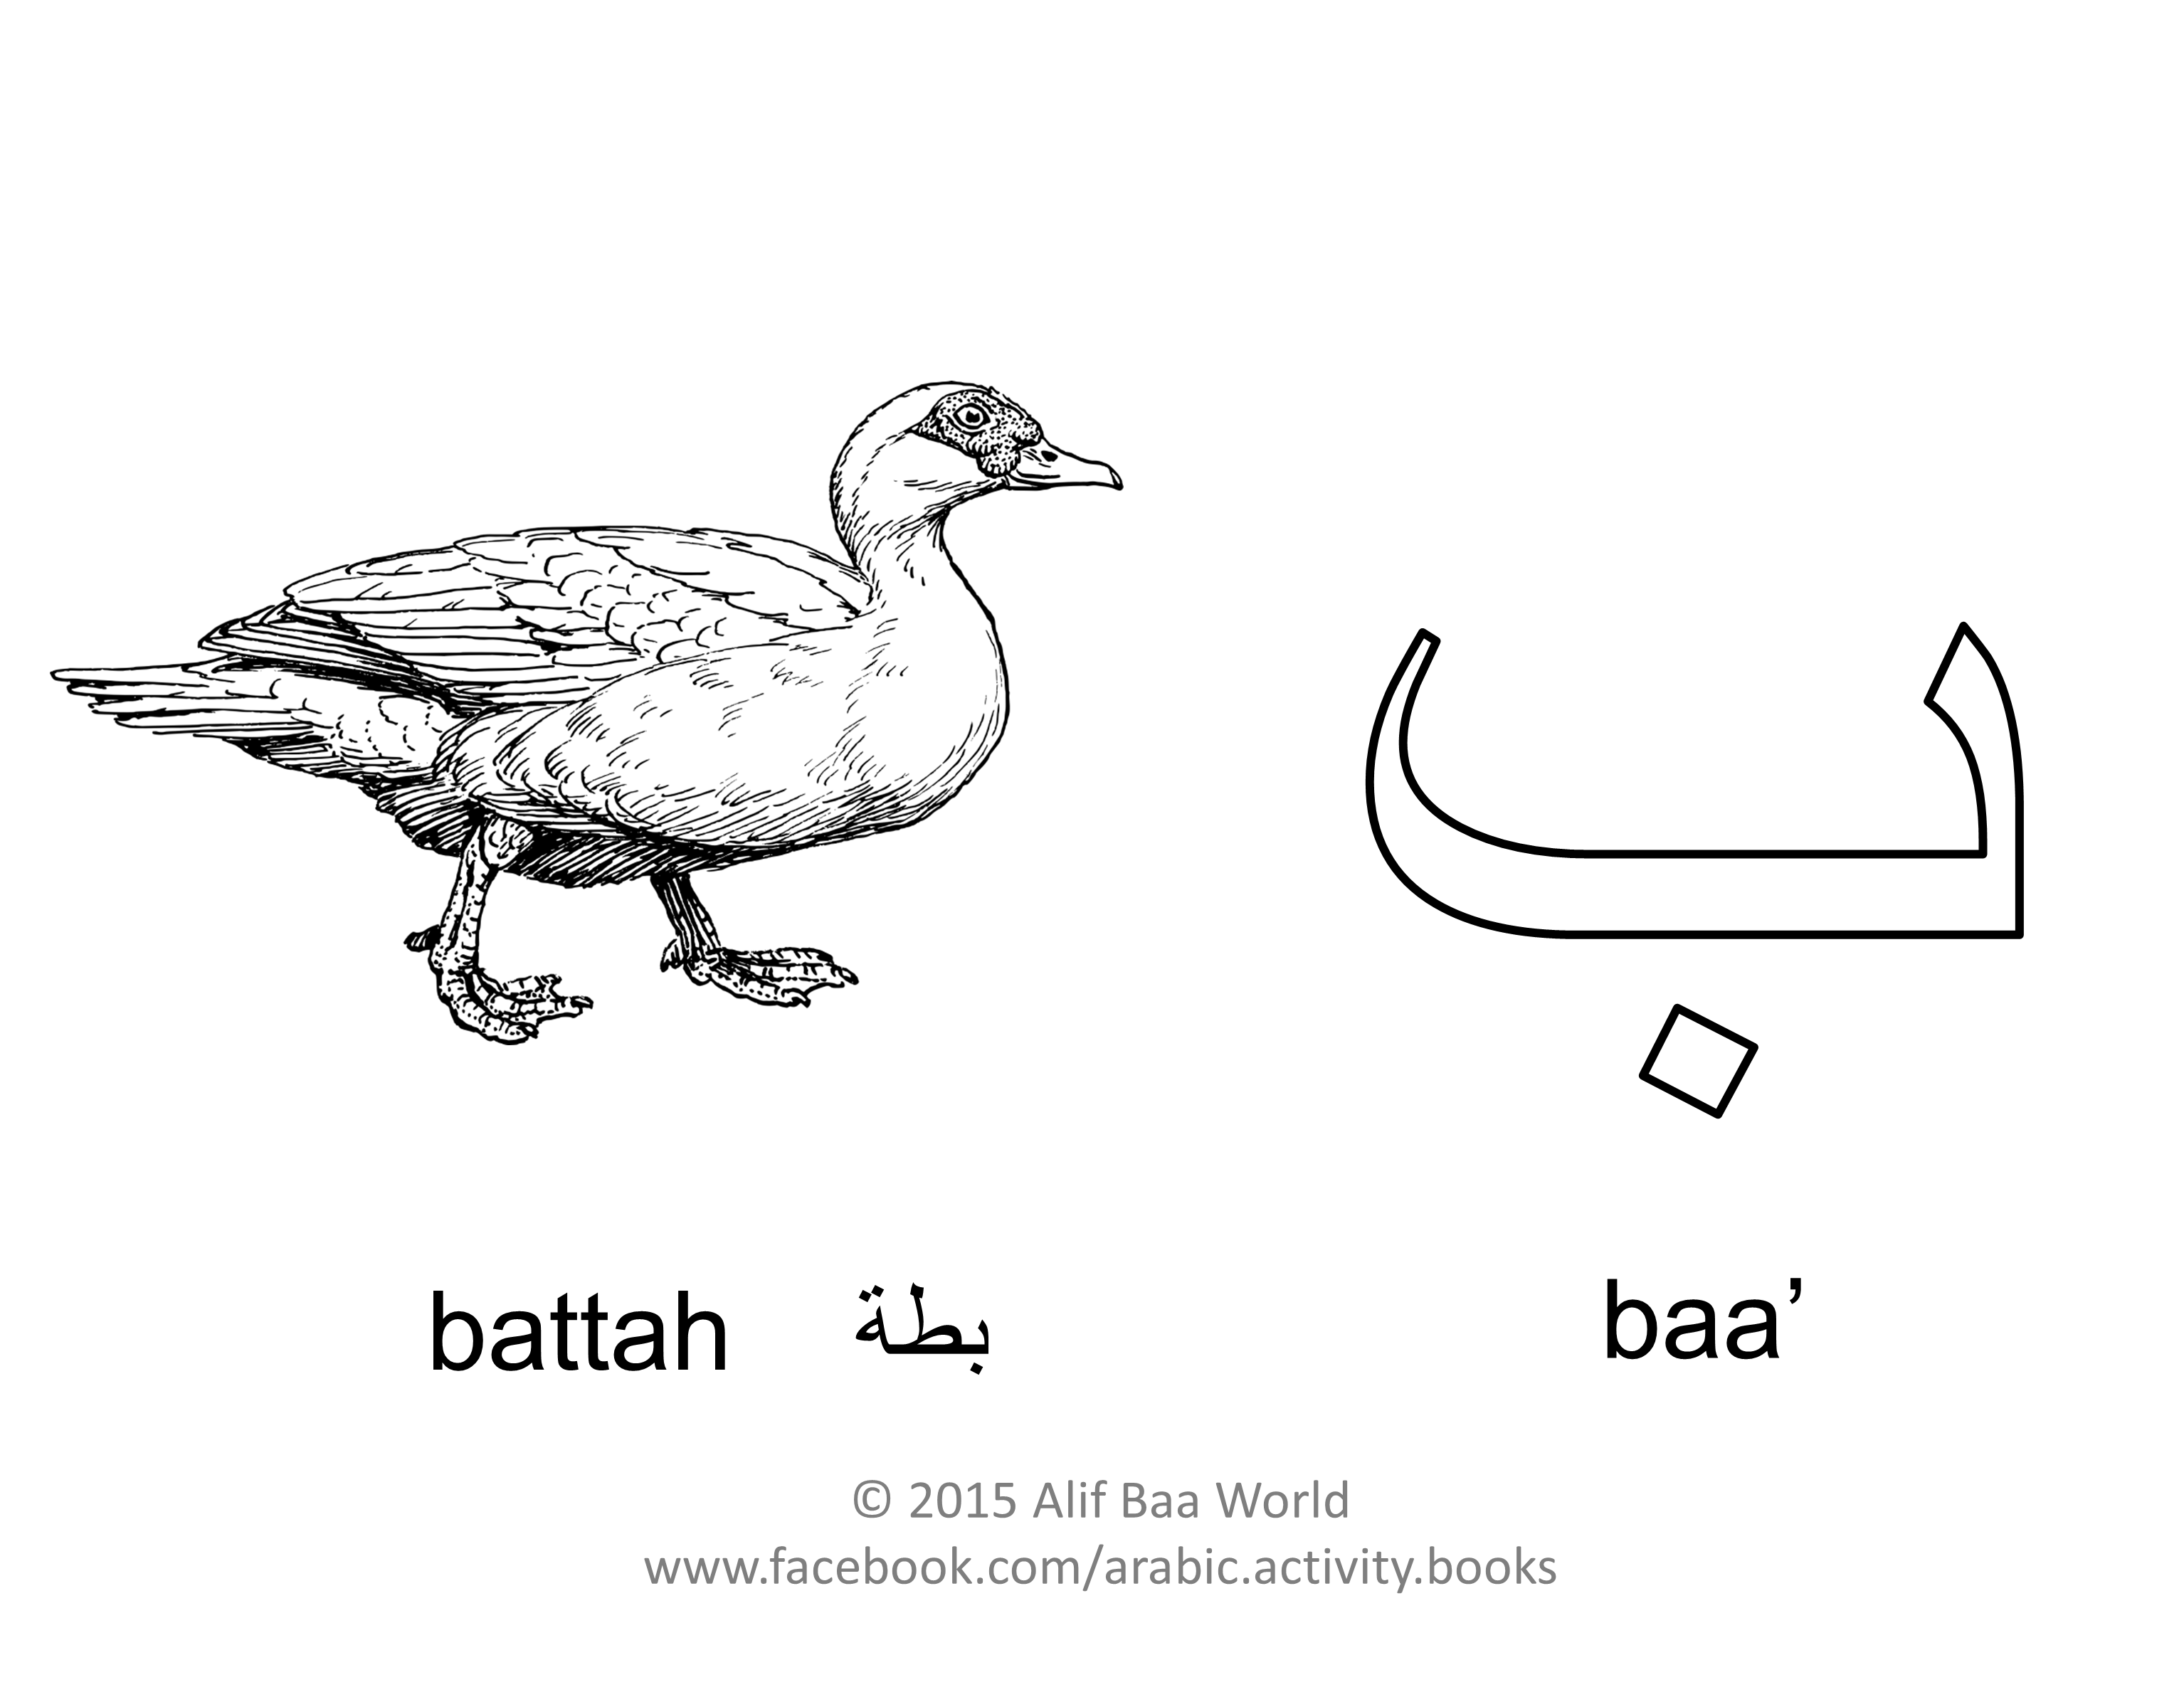 The Second Letter Of Arabic Alphabet Is Name Baa Sound B For Pronounced Battah English Duck Print And Color Animal